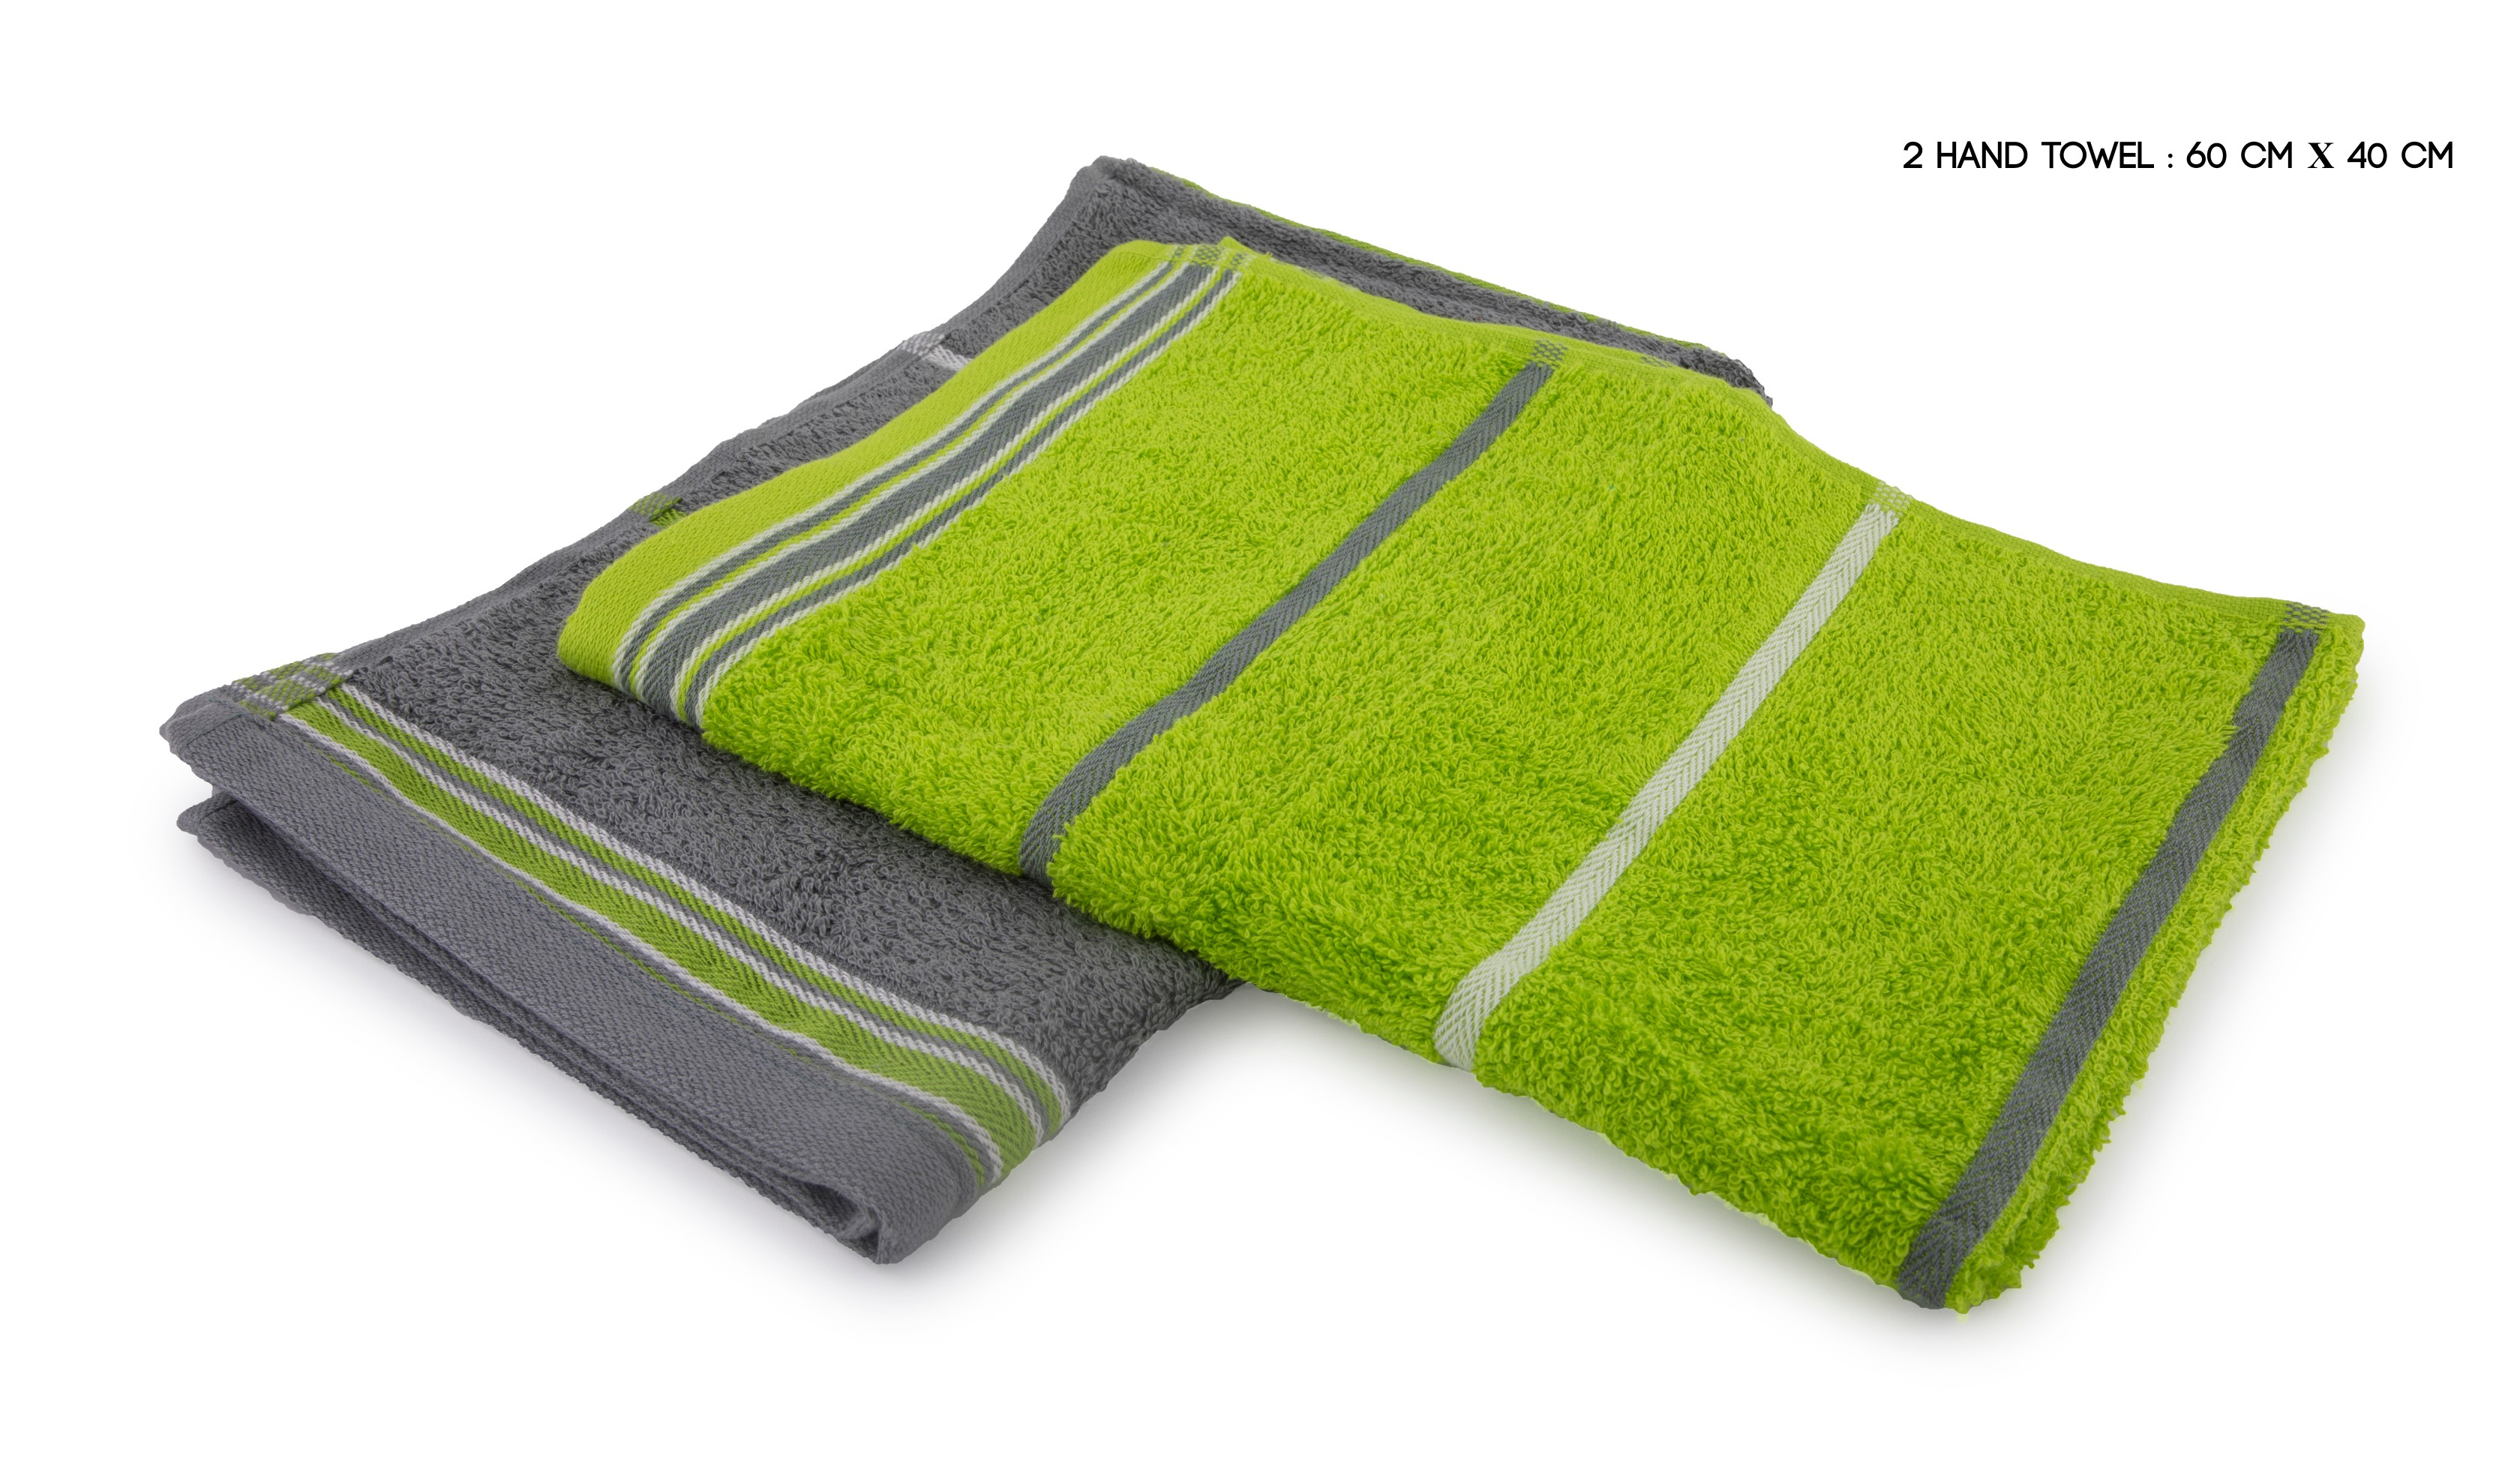 Emilia Handtowel Set Of 2 Cotton Hand Towels in Lime & Grey Colour by HomeTown